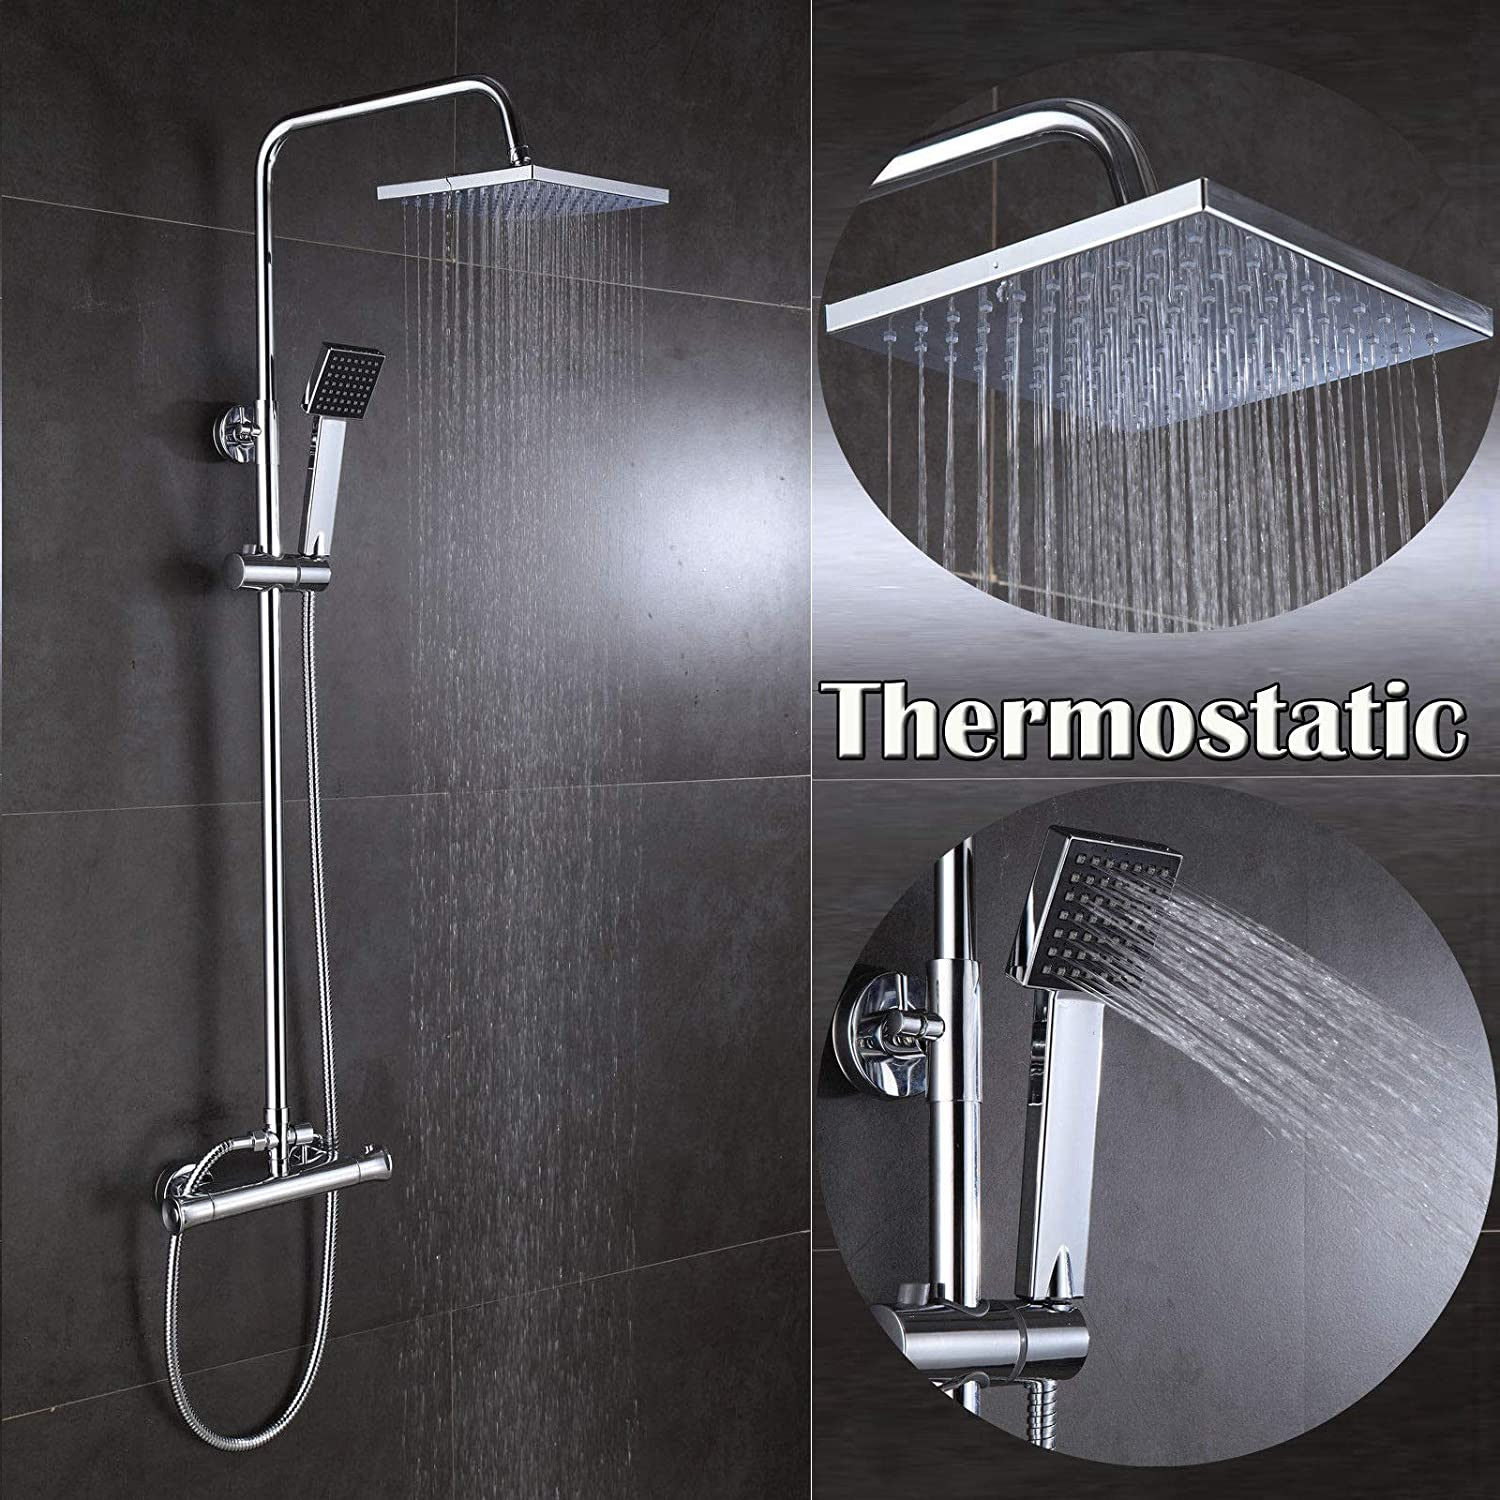 Square Shower Set Thermostatic Mixer Bar Value Dual Control Overhead Rain Head and Handset Combo Kit Chrome with UK Standard Fitting